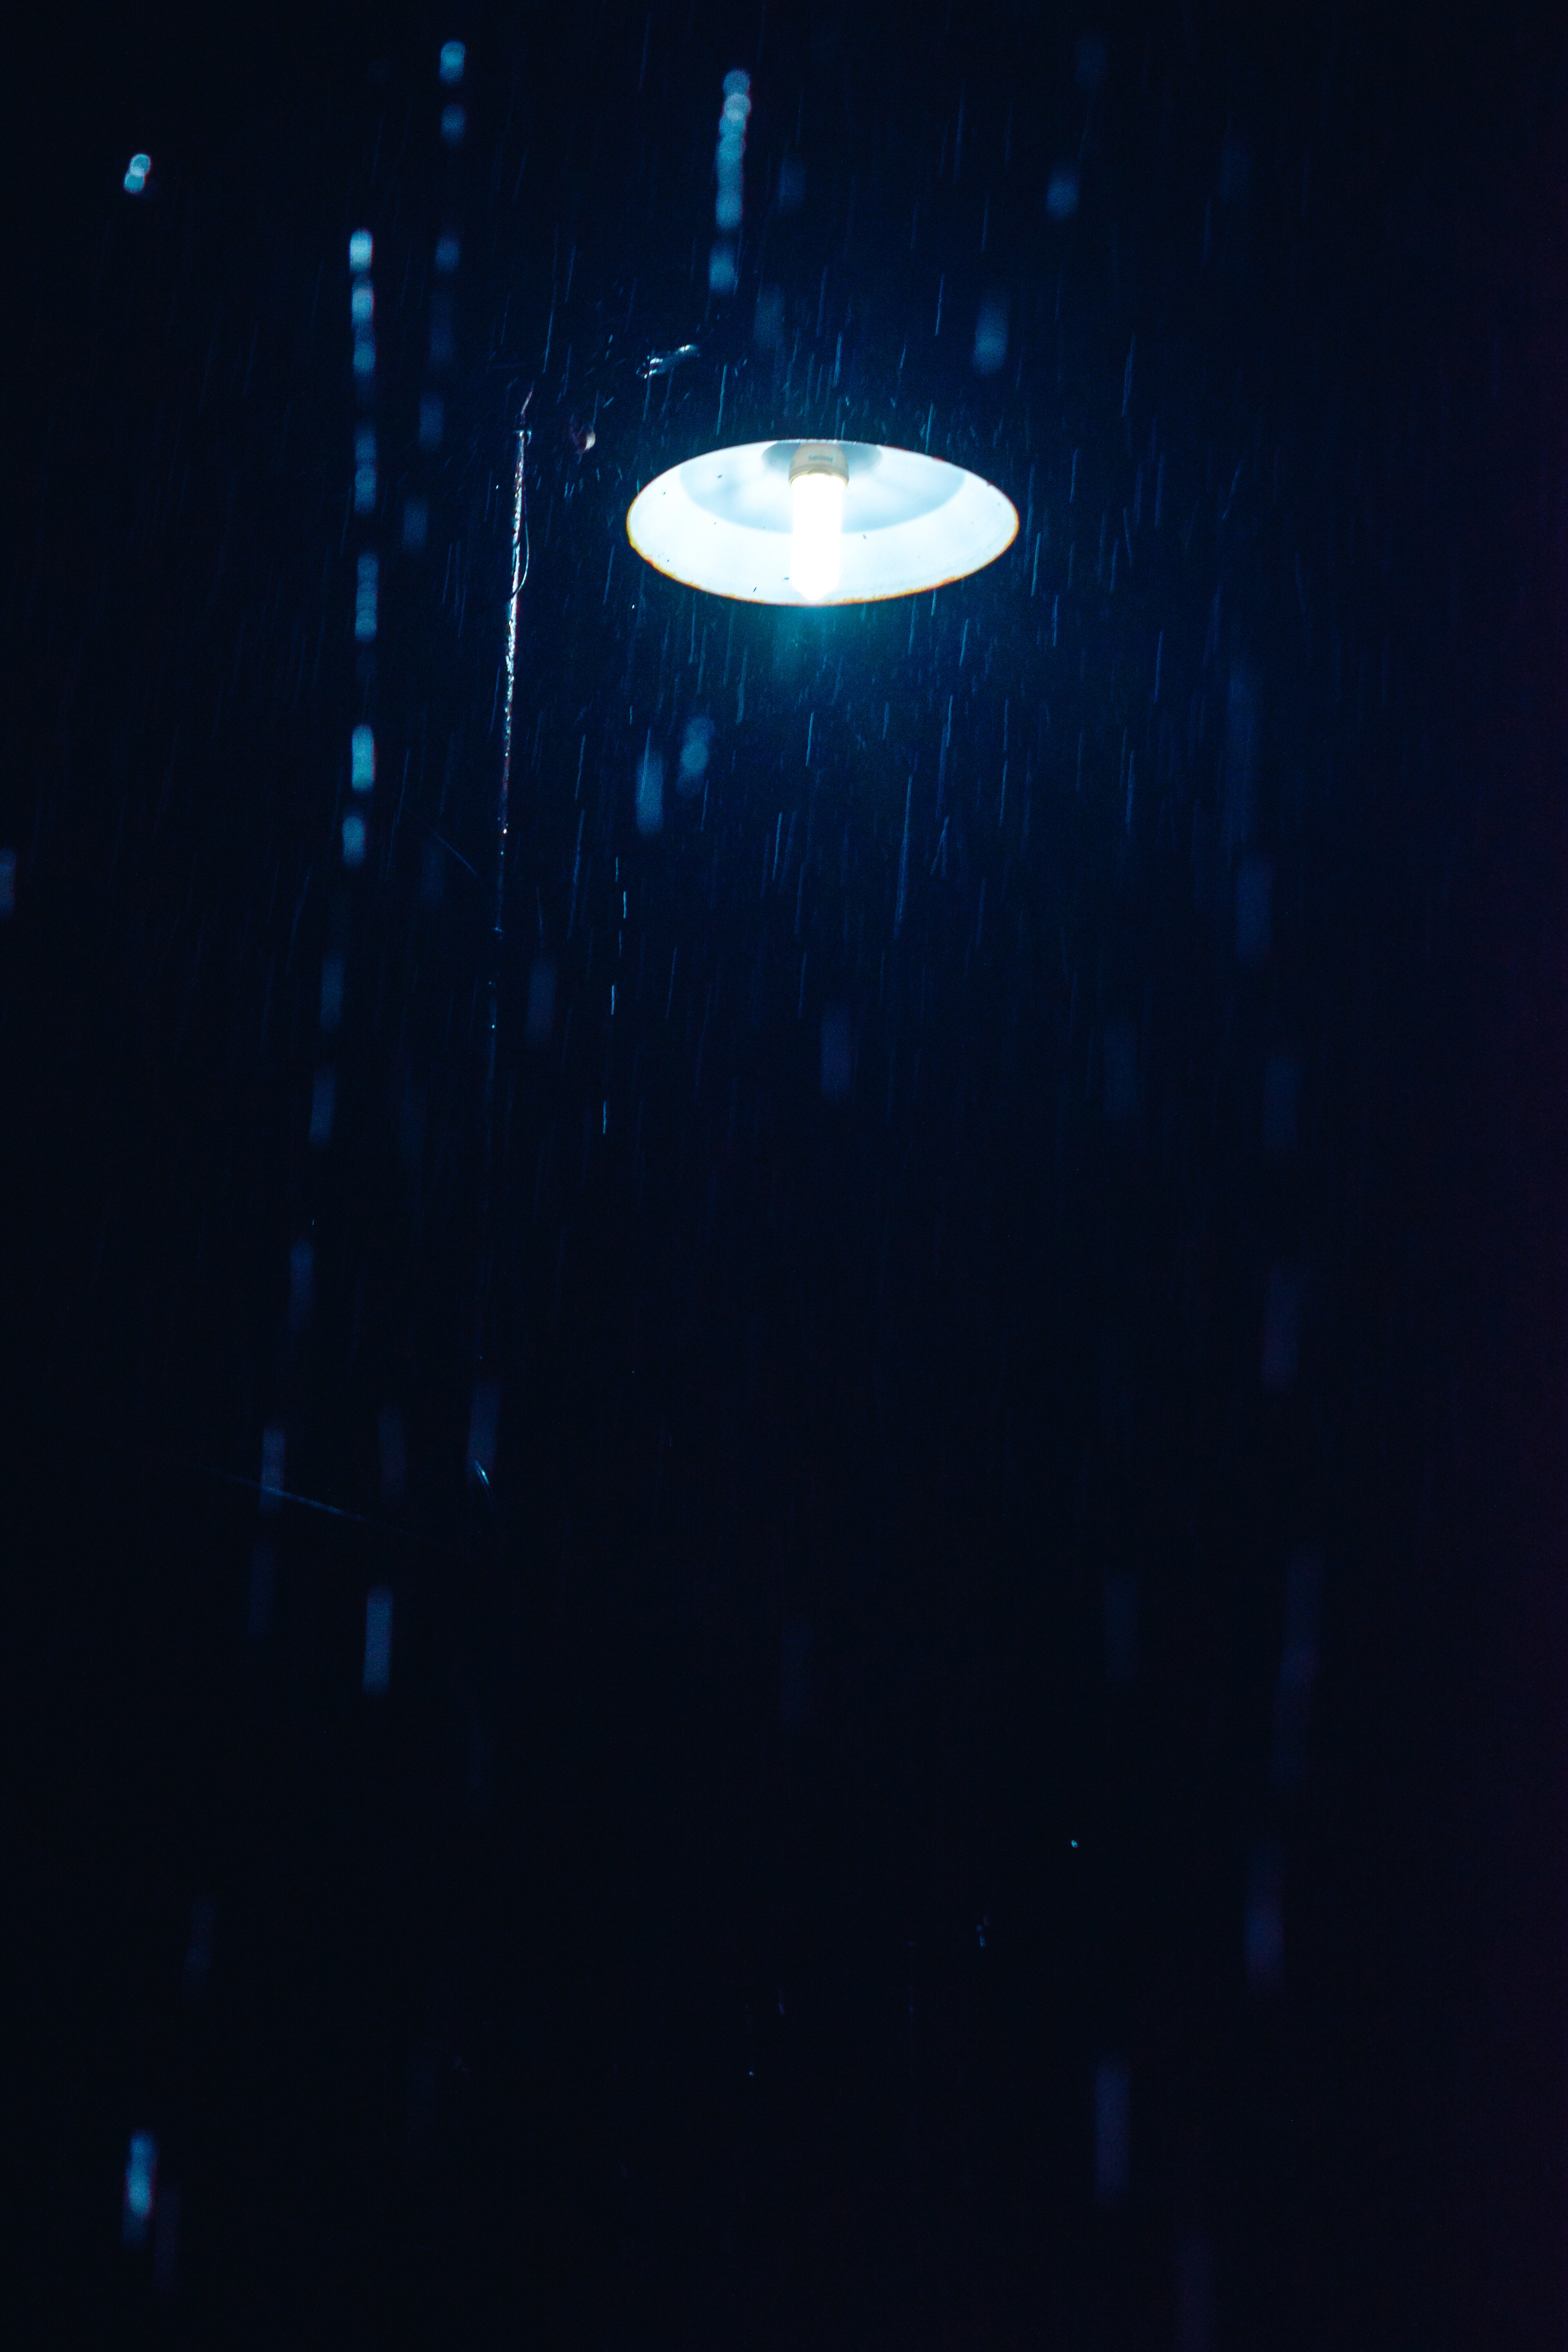 99947 Screensavers and Wallpapers Lamp for phone. Download Rain, Night, Dark, Shine, Light, Lamp, Lantern pictures for free